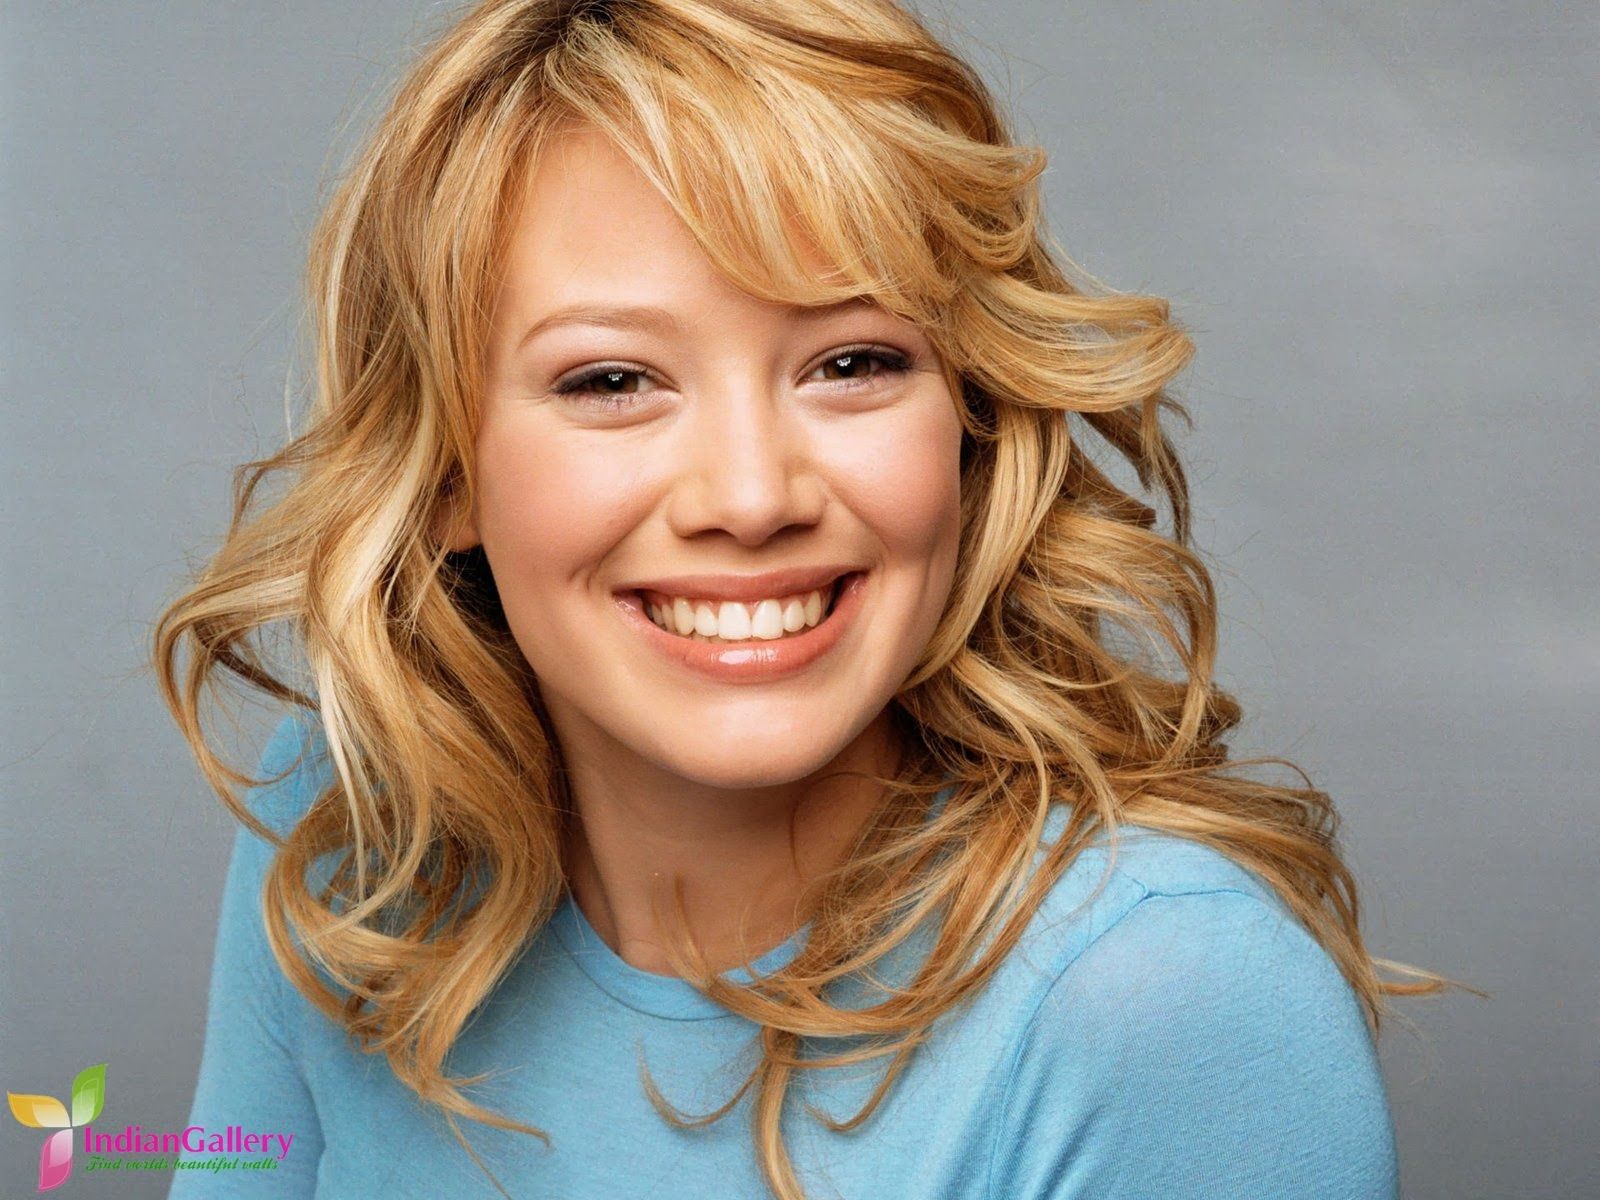 Wallpapers Free Downlo... Hilary Duff